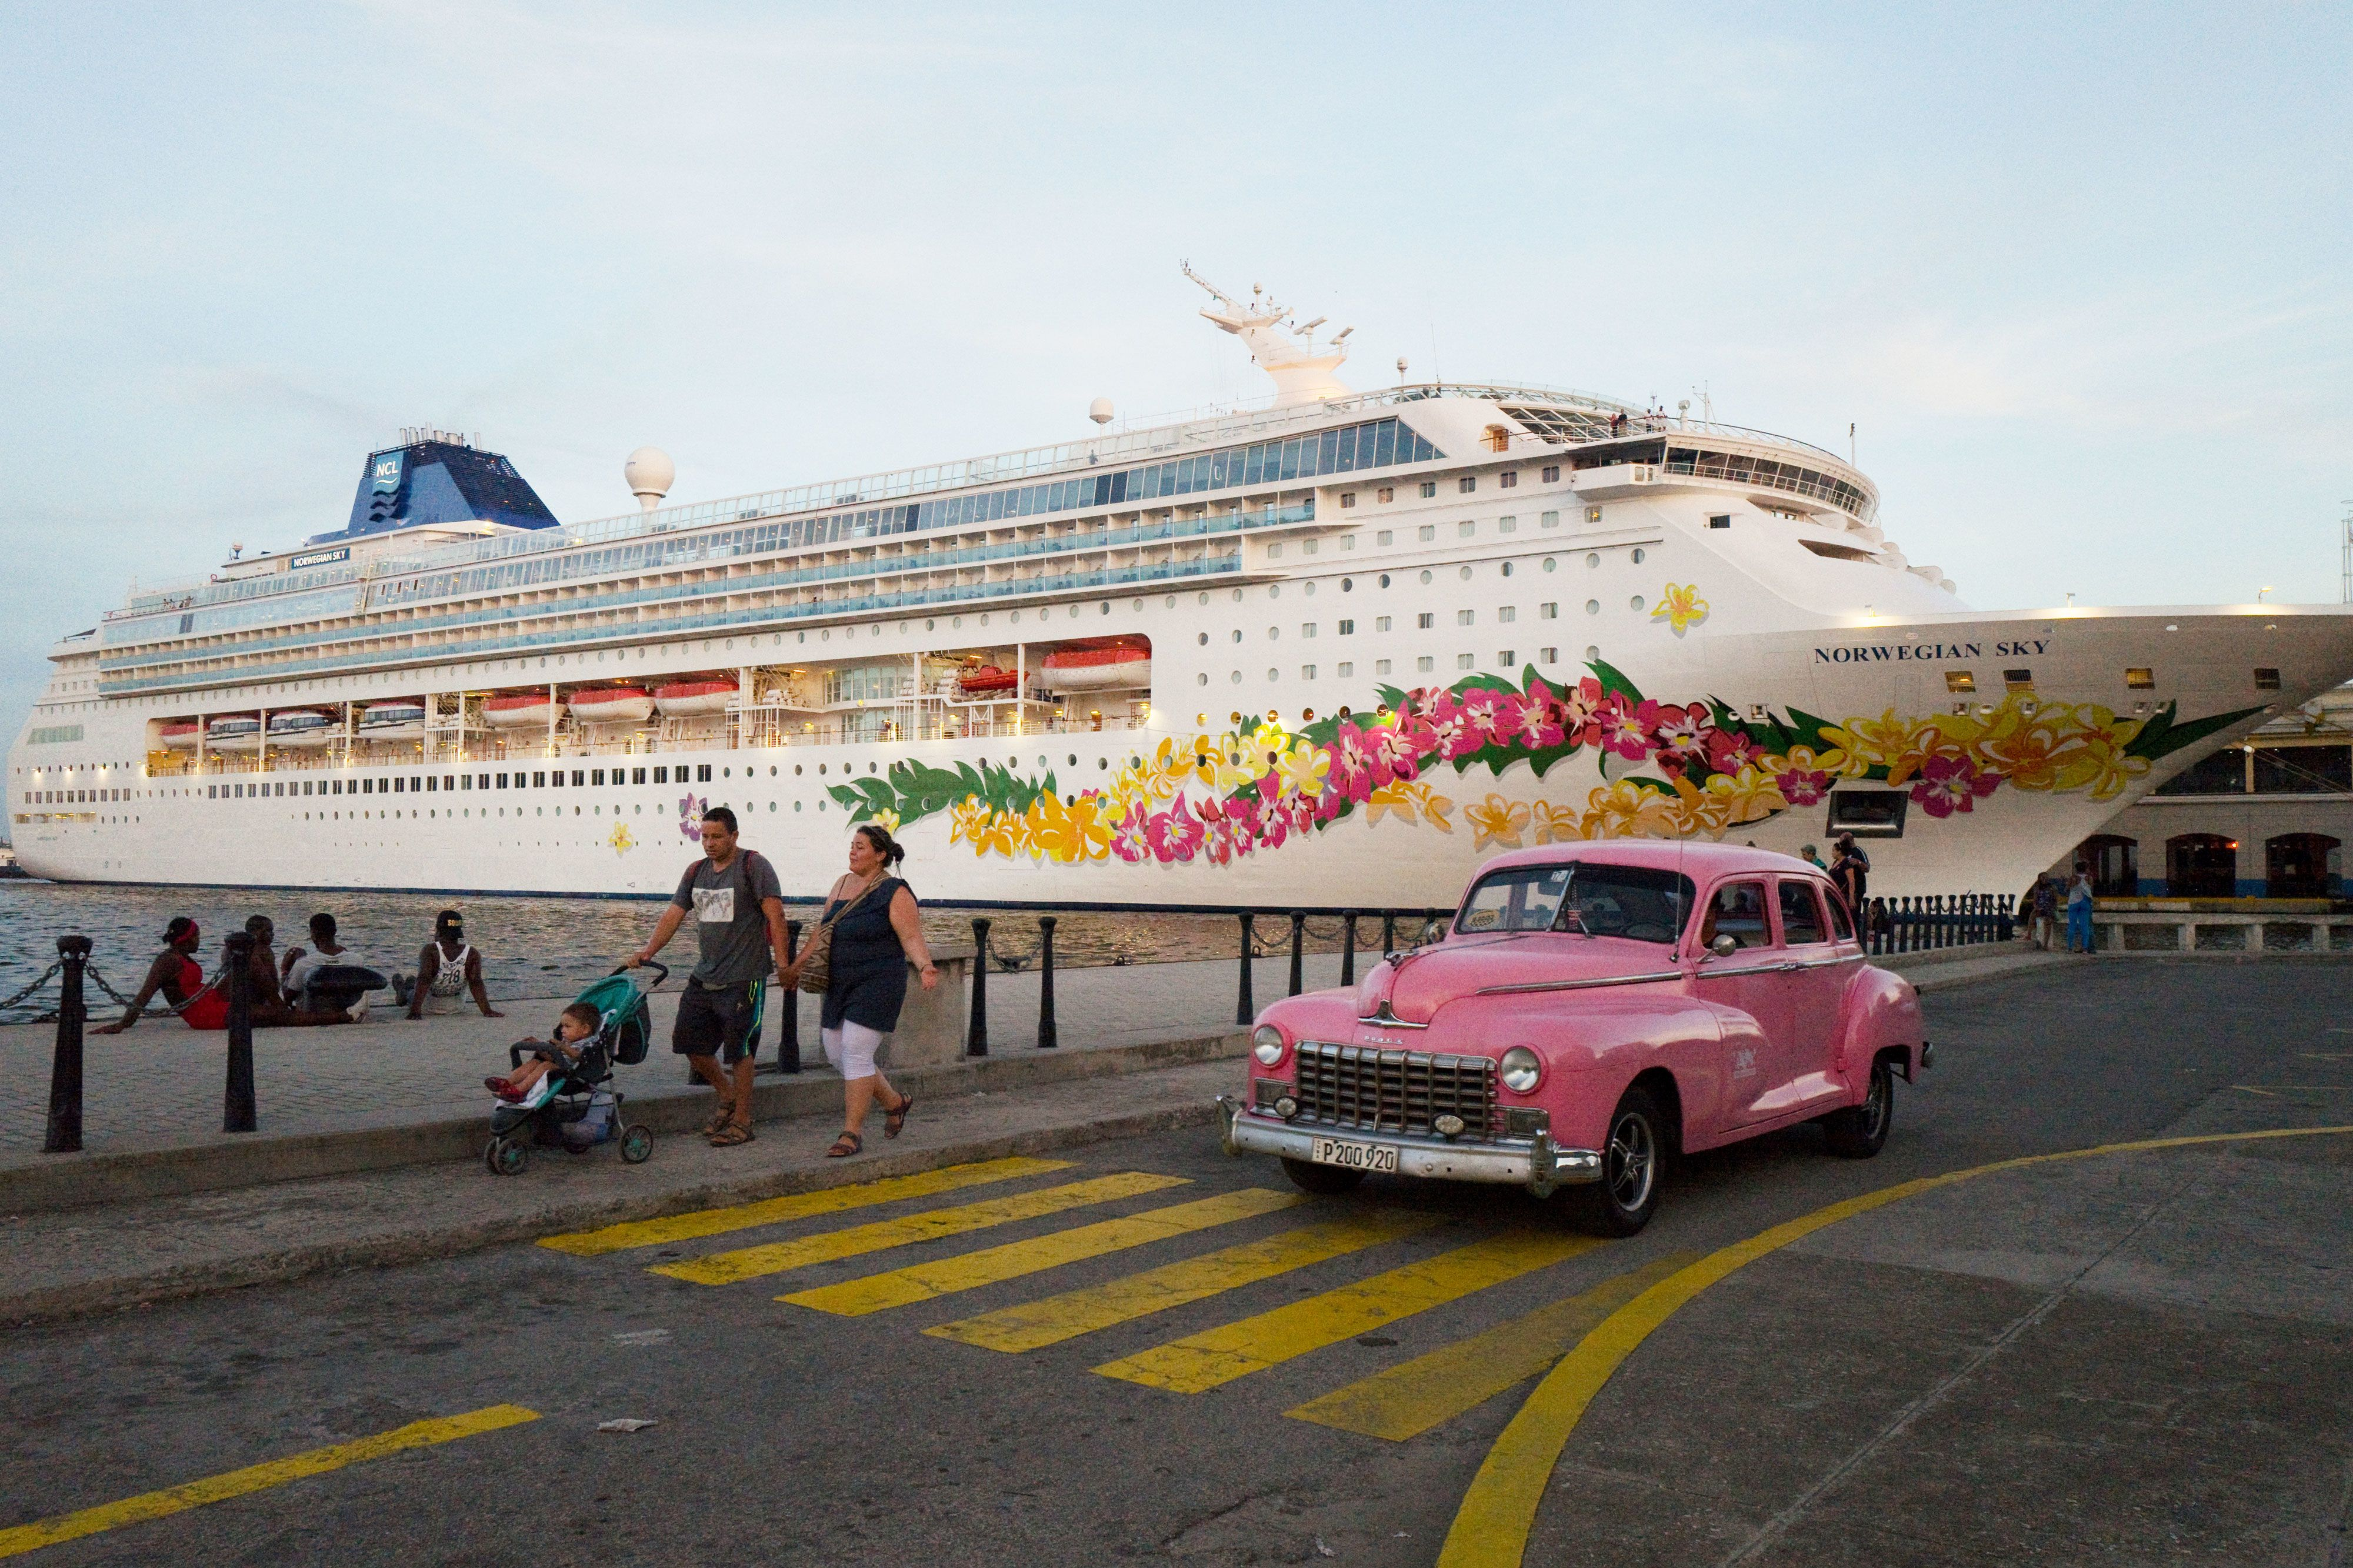 Norwegian Cruise Line says Cuba travel ban to hit 2019 earnings